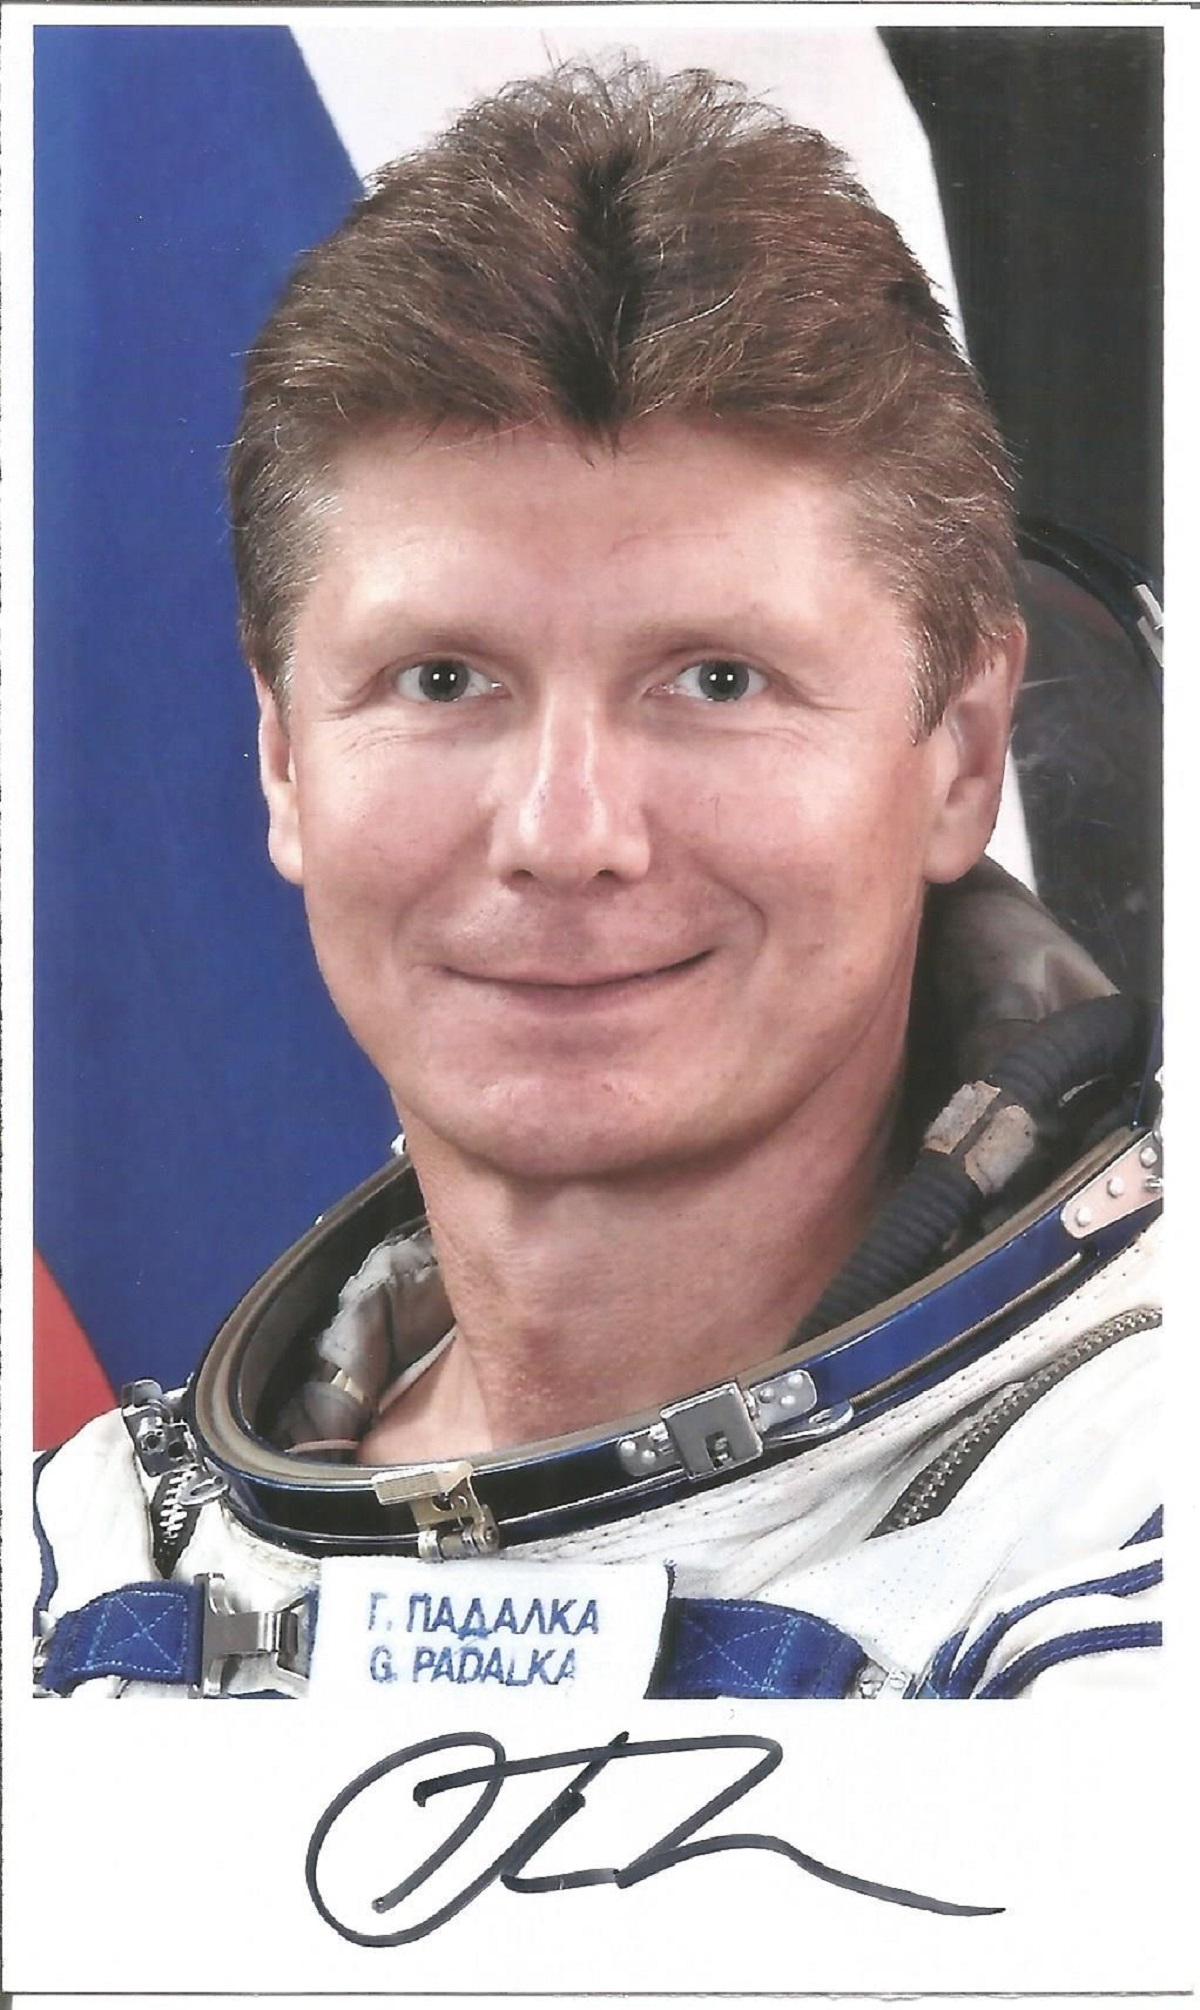 Gennady Padalka, Russian Soyuz Cosmonaut signed 6 x 3 colour photo. Padalka is a Russian Air Force